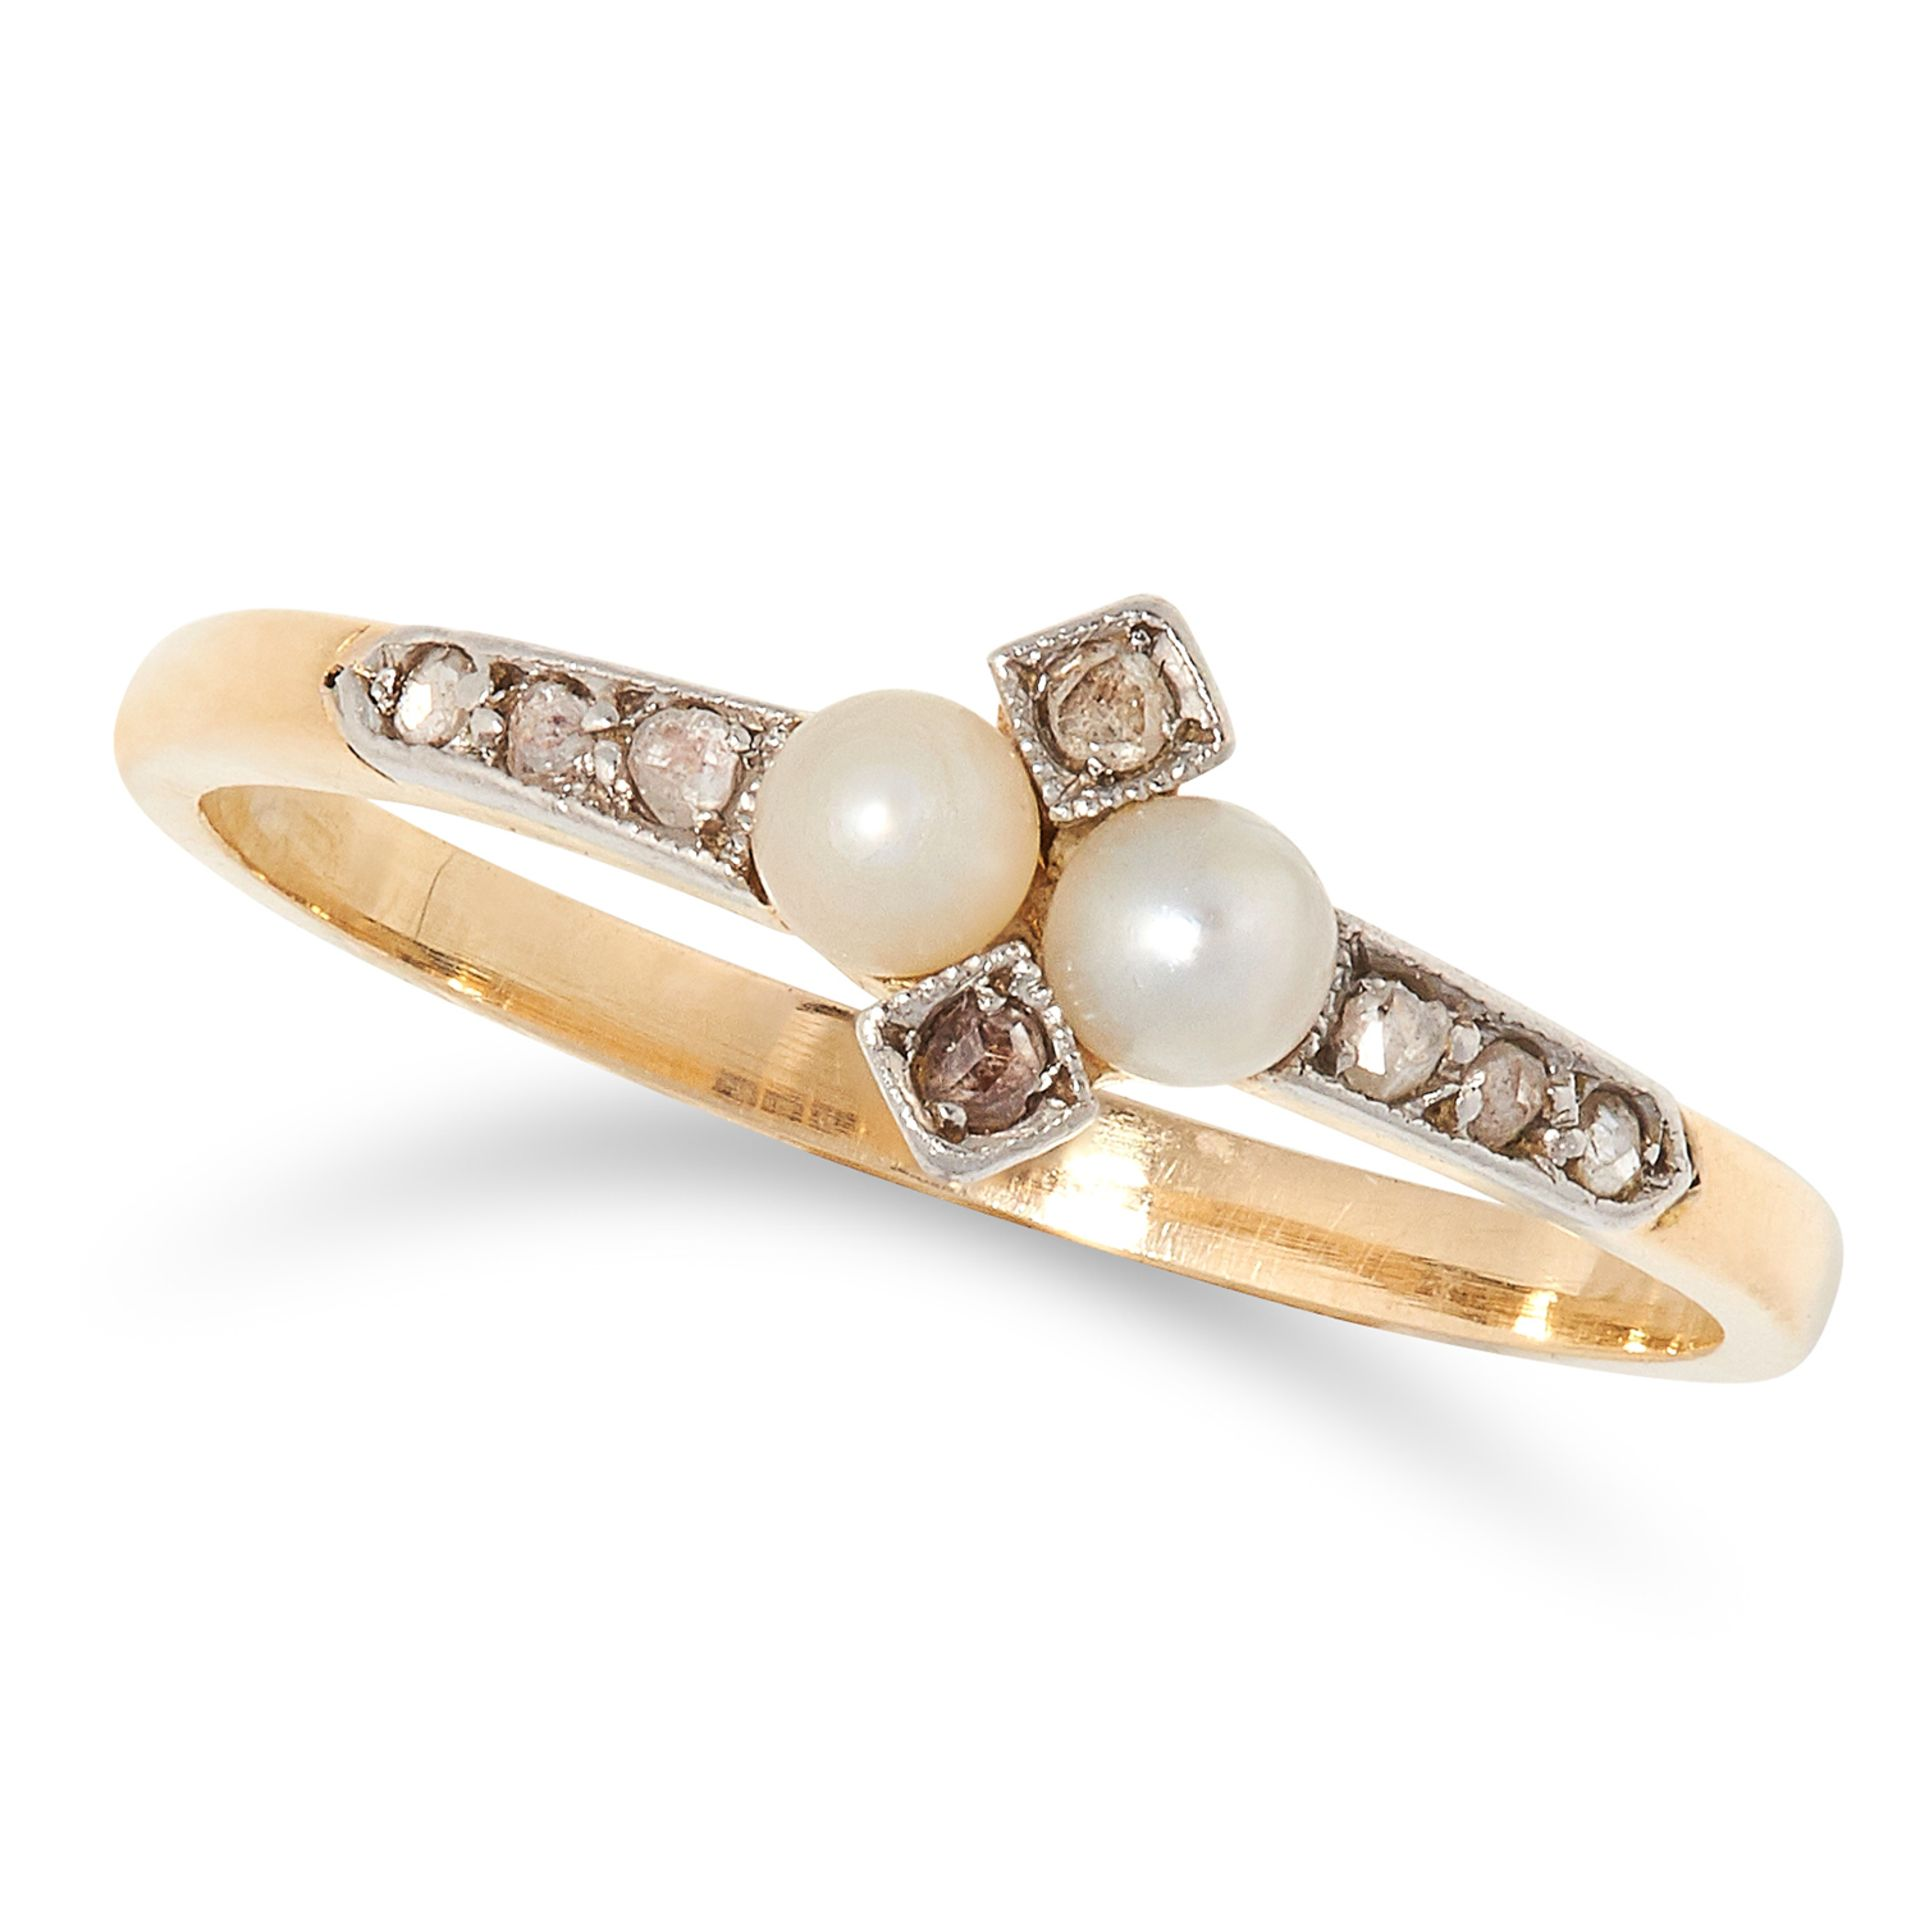 ANTIQUE PEARL AND DIAMOND RING set with two pearls and rose cut diamonds, size M / 6, 1.8g.